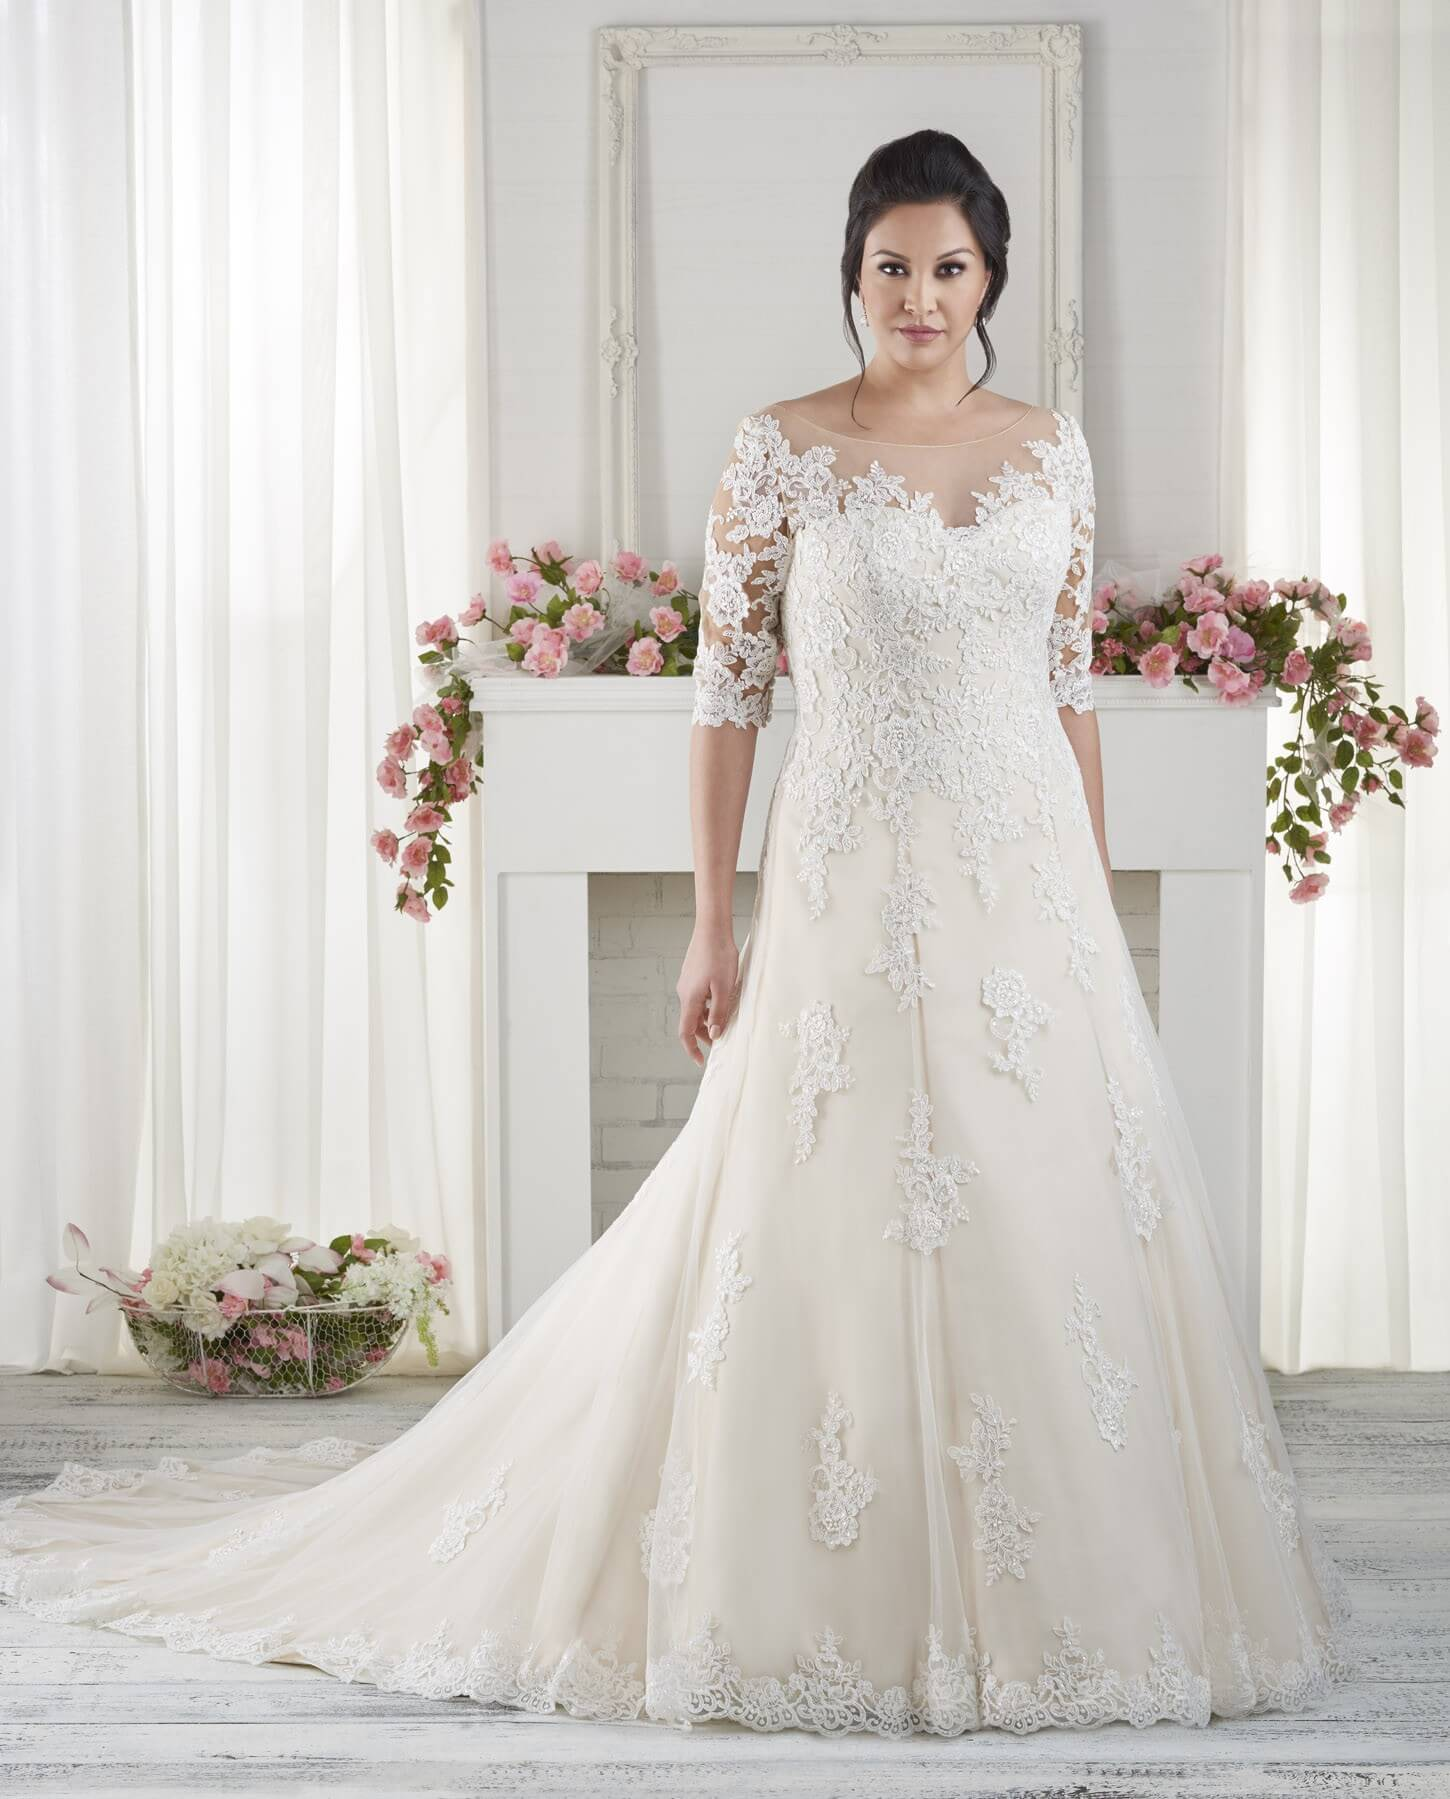 Best Wedding Gown: The Best Wedding Dresses For Brides With Fat Arms